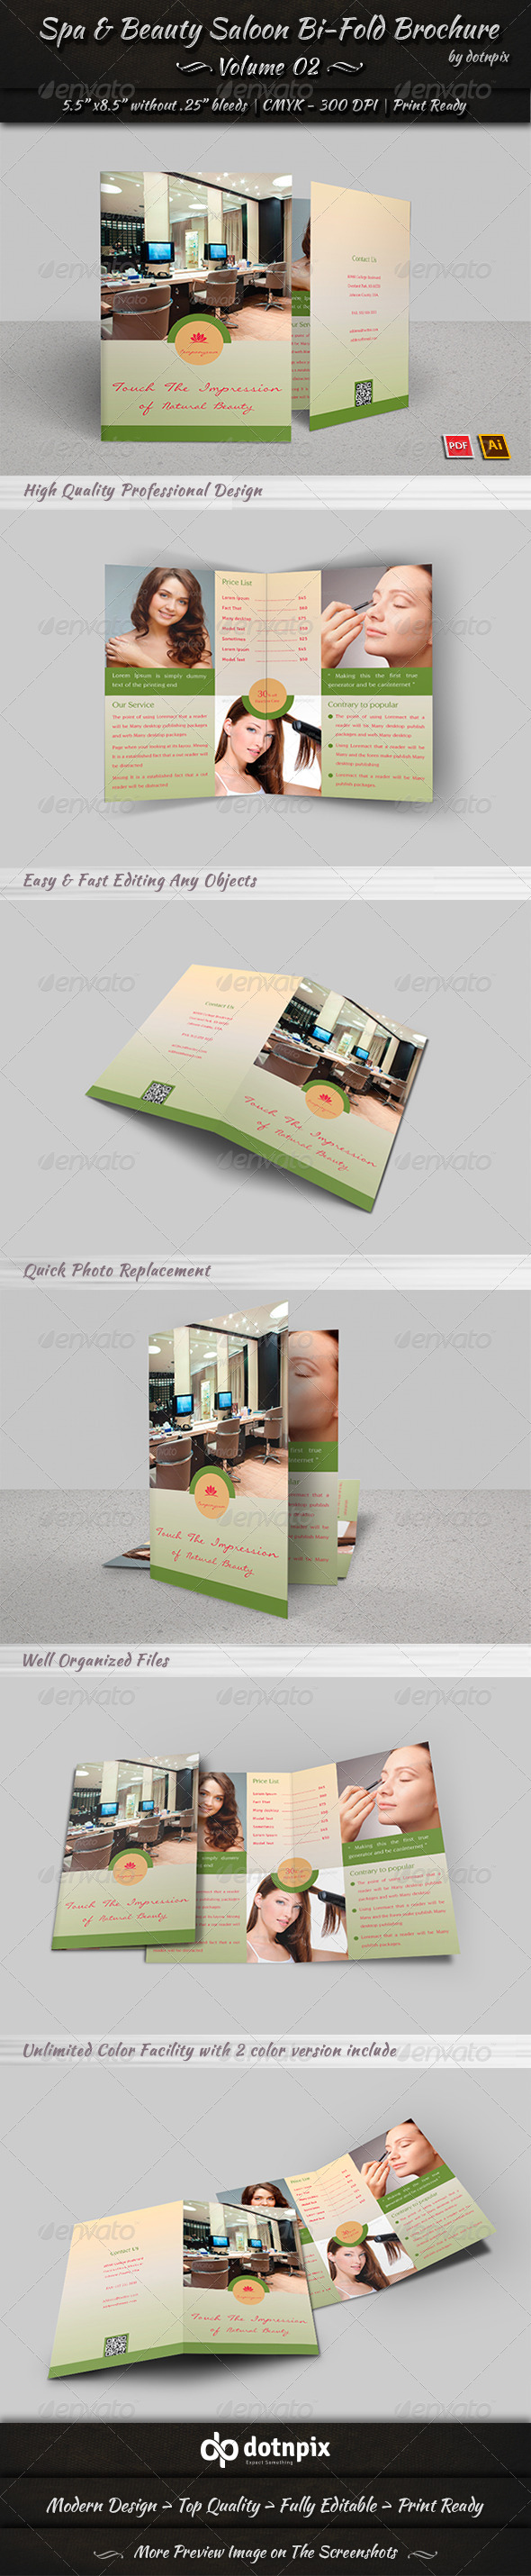 GraphicRiver Spa & Beauty Saloon Bi-Fold Brochure Volume 2 8035535